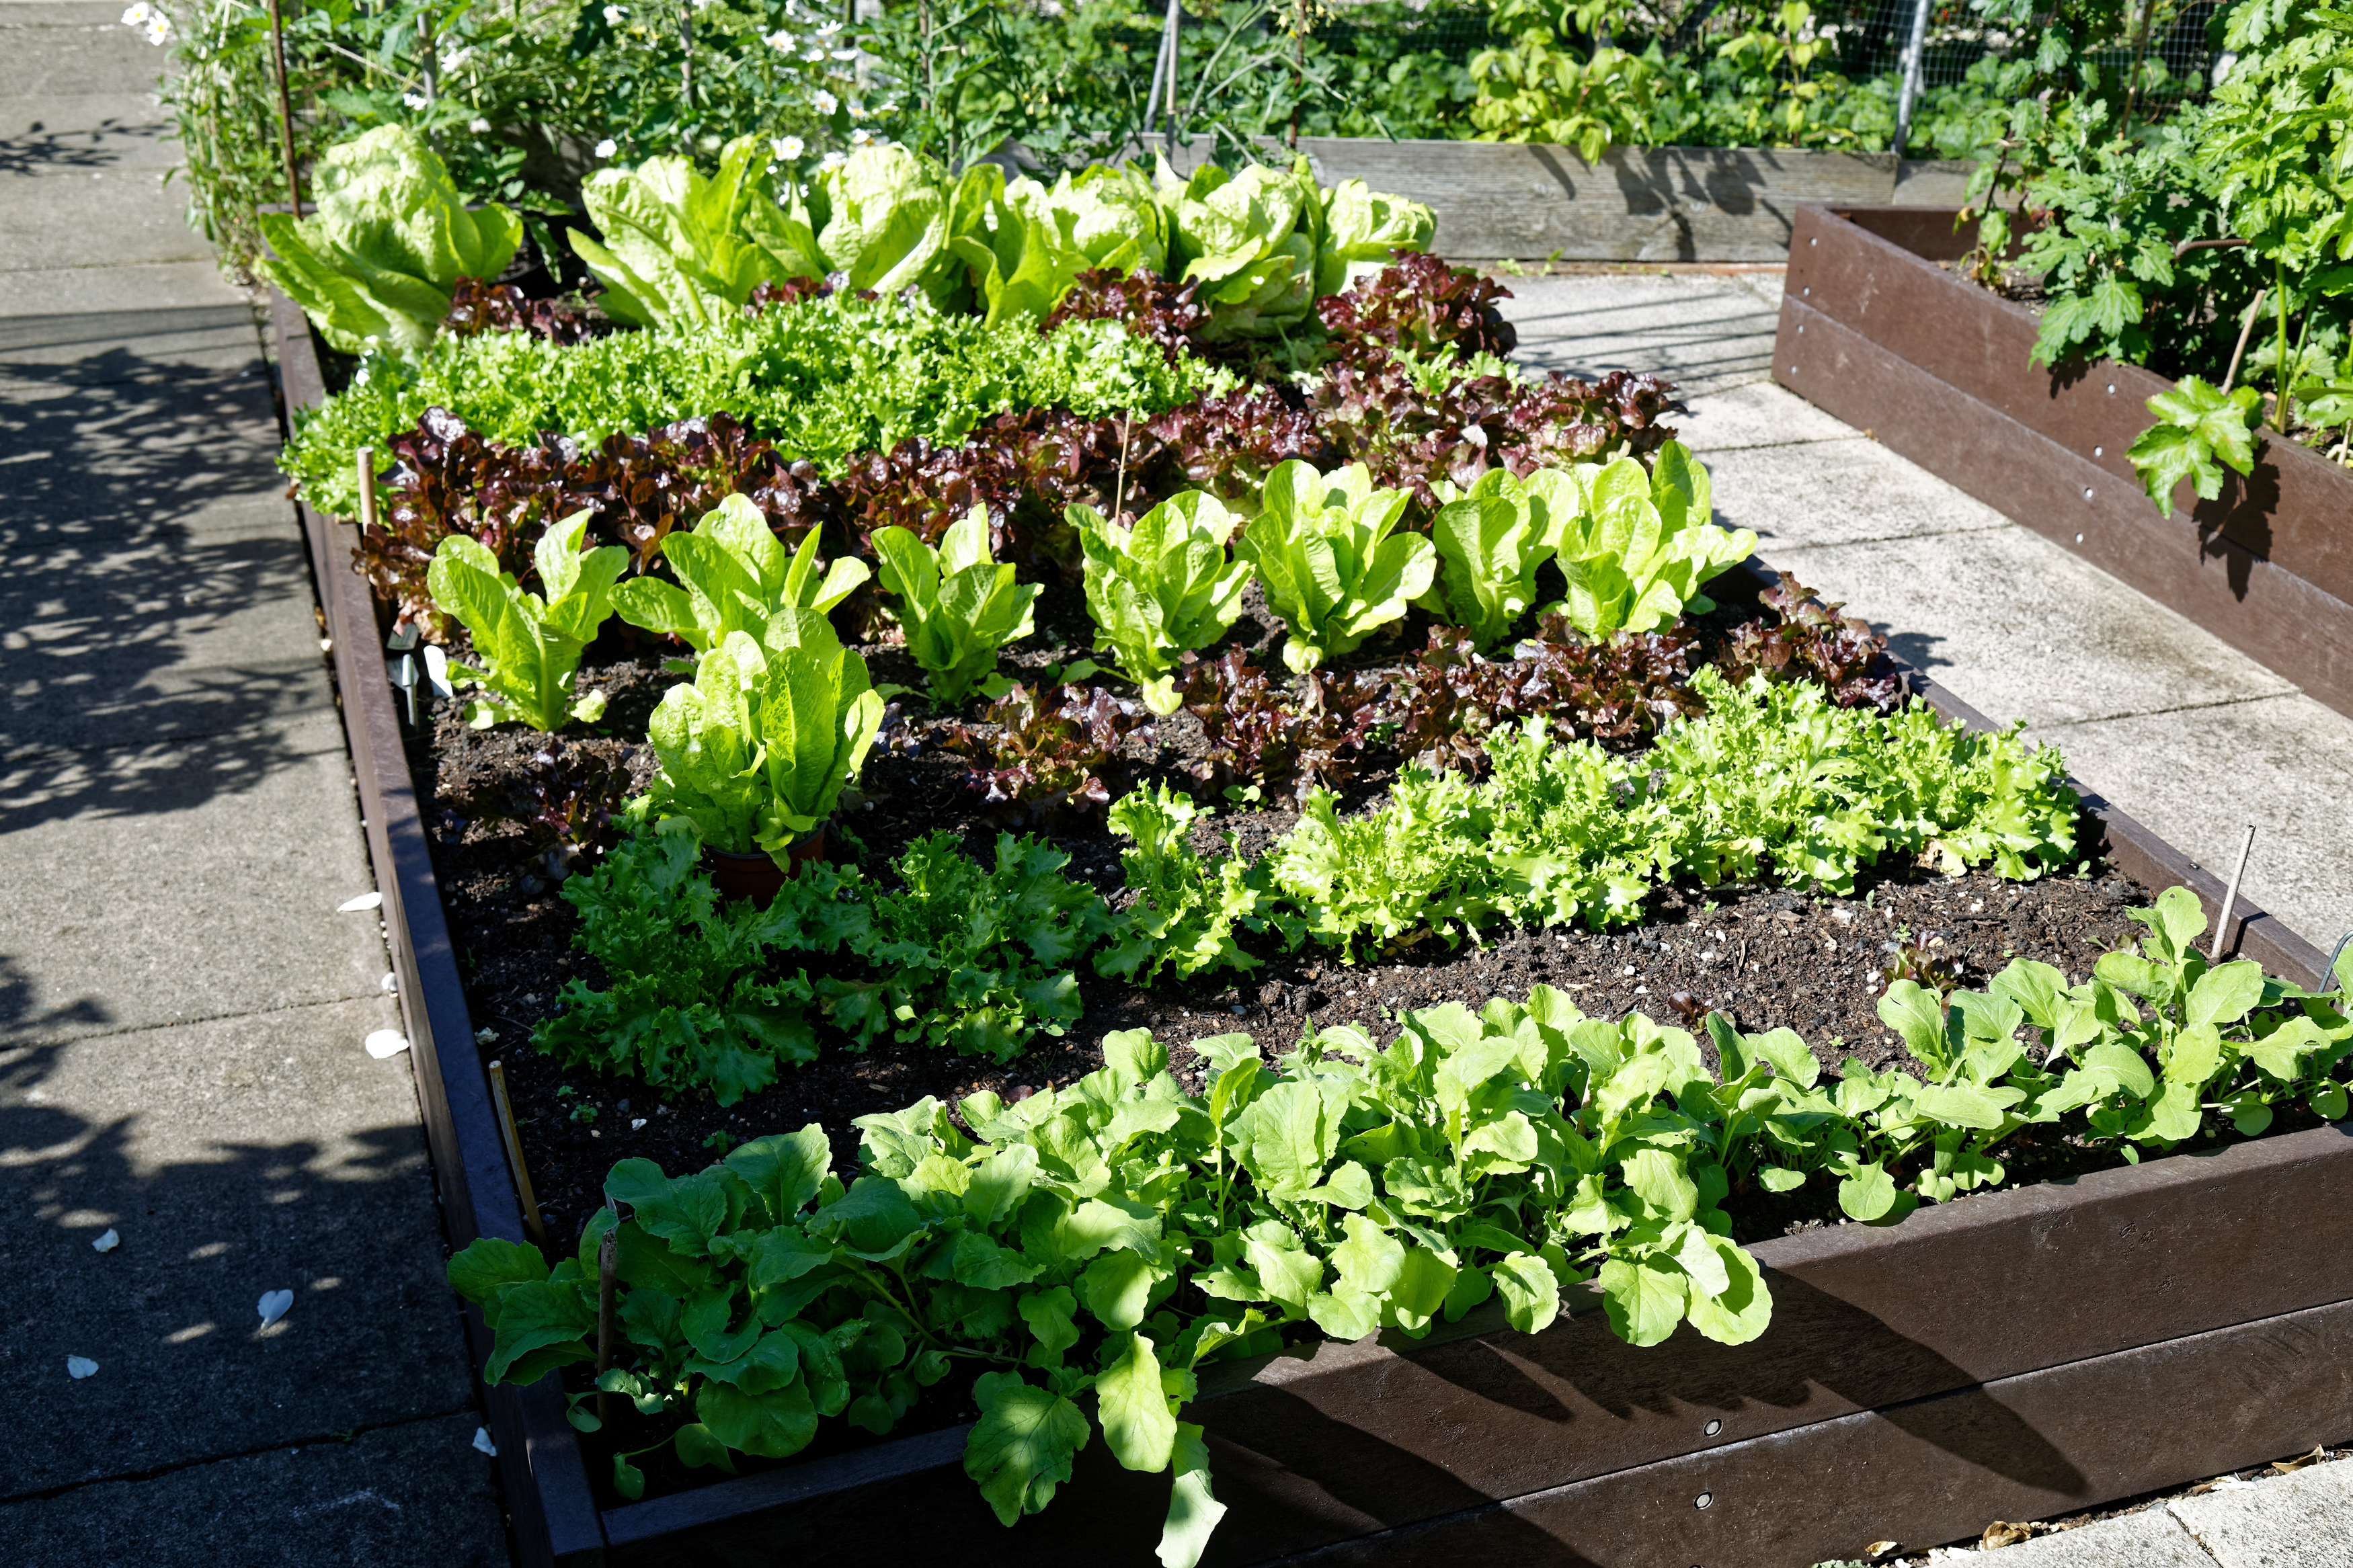 Rich soil, adequate water and perfect weather combine for a bumper crop.